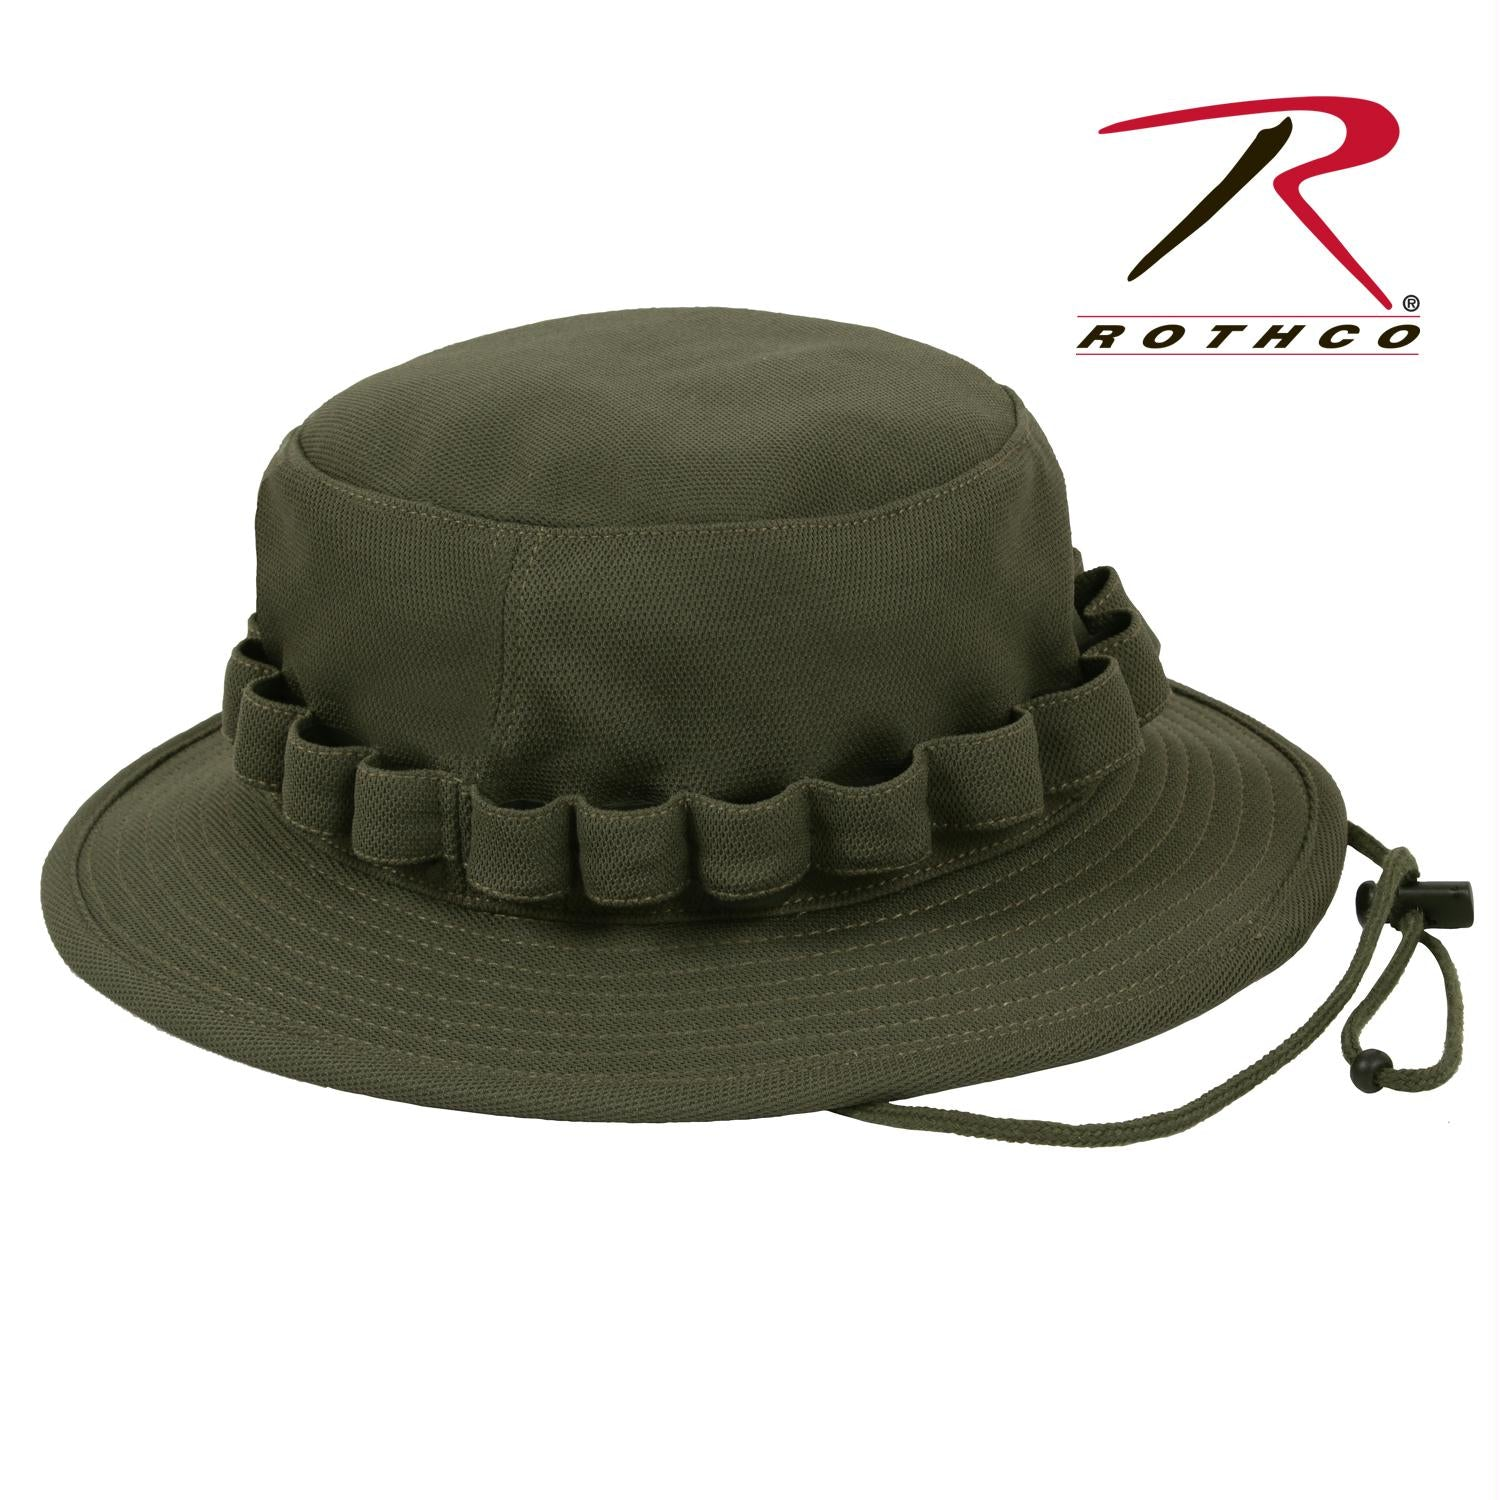 Rothco Coolweight Boonie Hat - Olive Drab / S/M